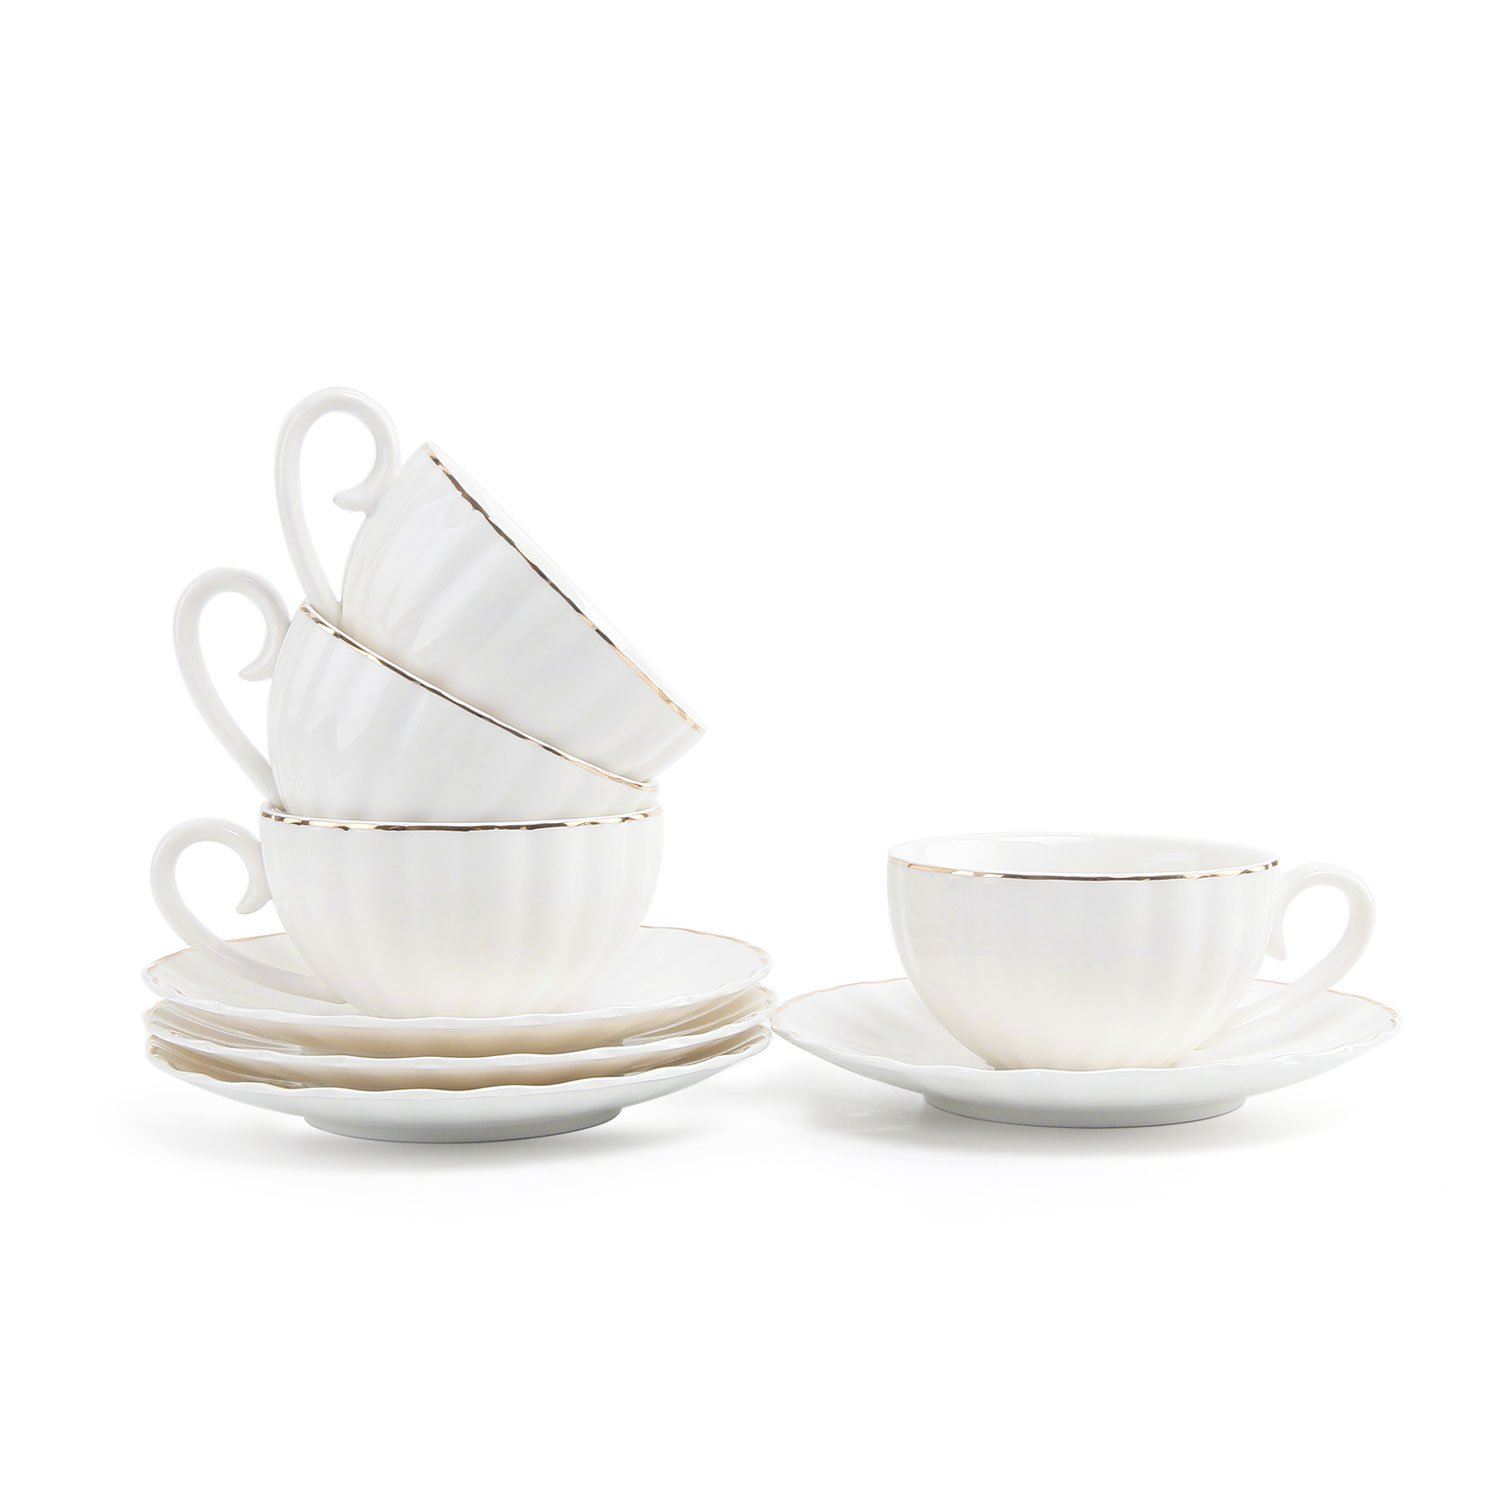 T4U 7.5OZ Porcelain Coffee Cup with Saucer Set of 4, White with Golden Trim British Royal Style Cappuccino Latte Tea Cup with Saucer Set